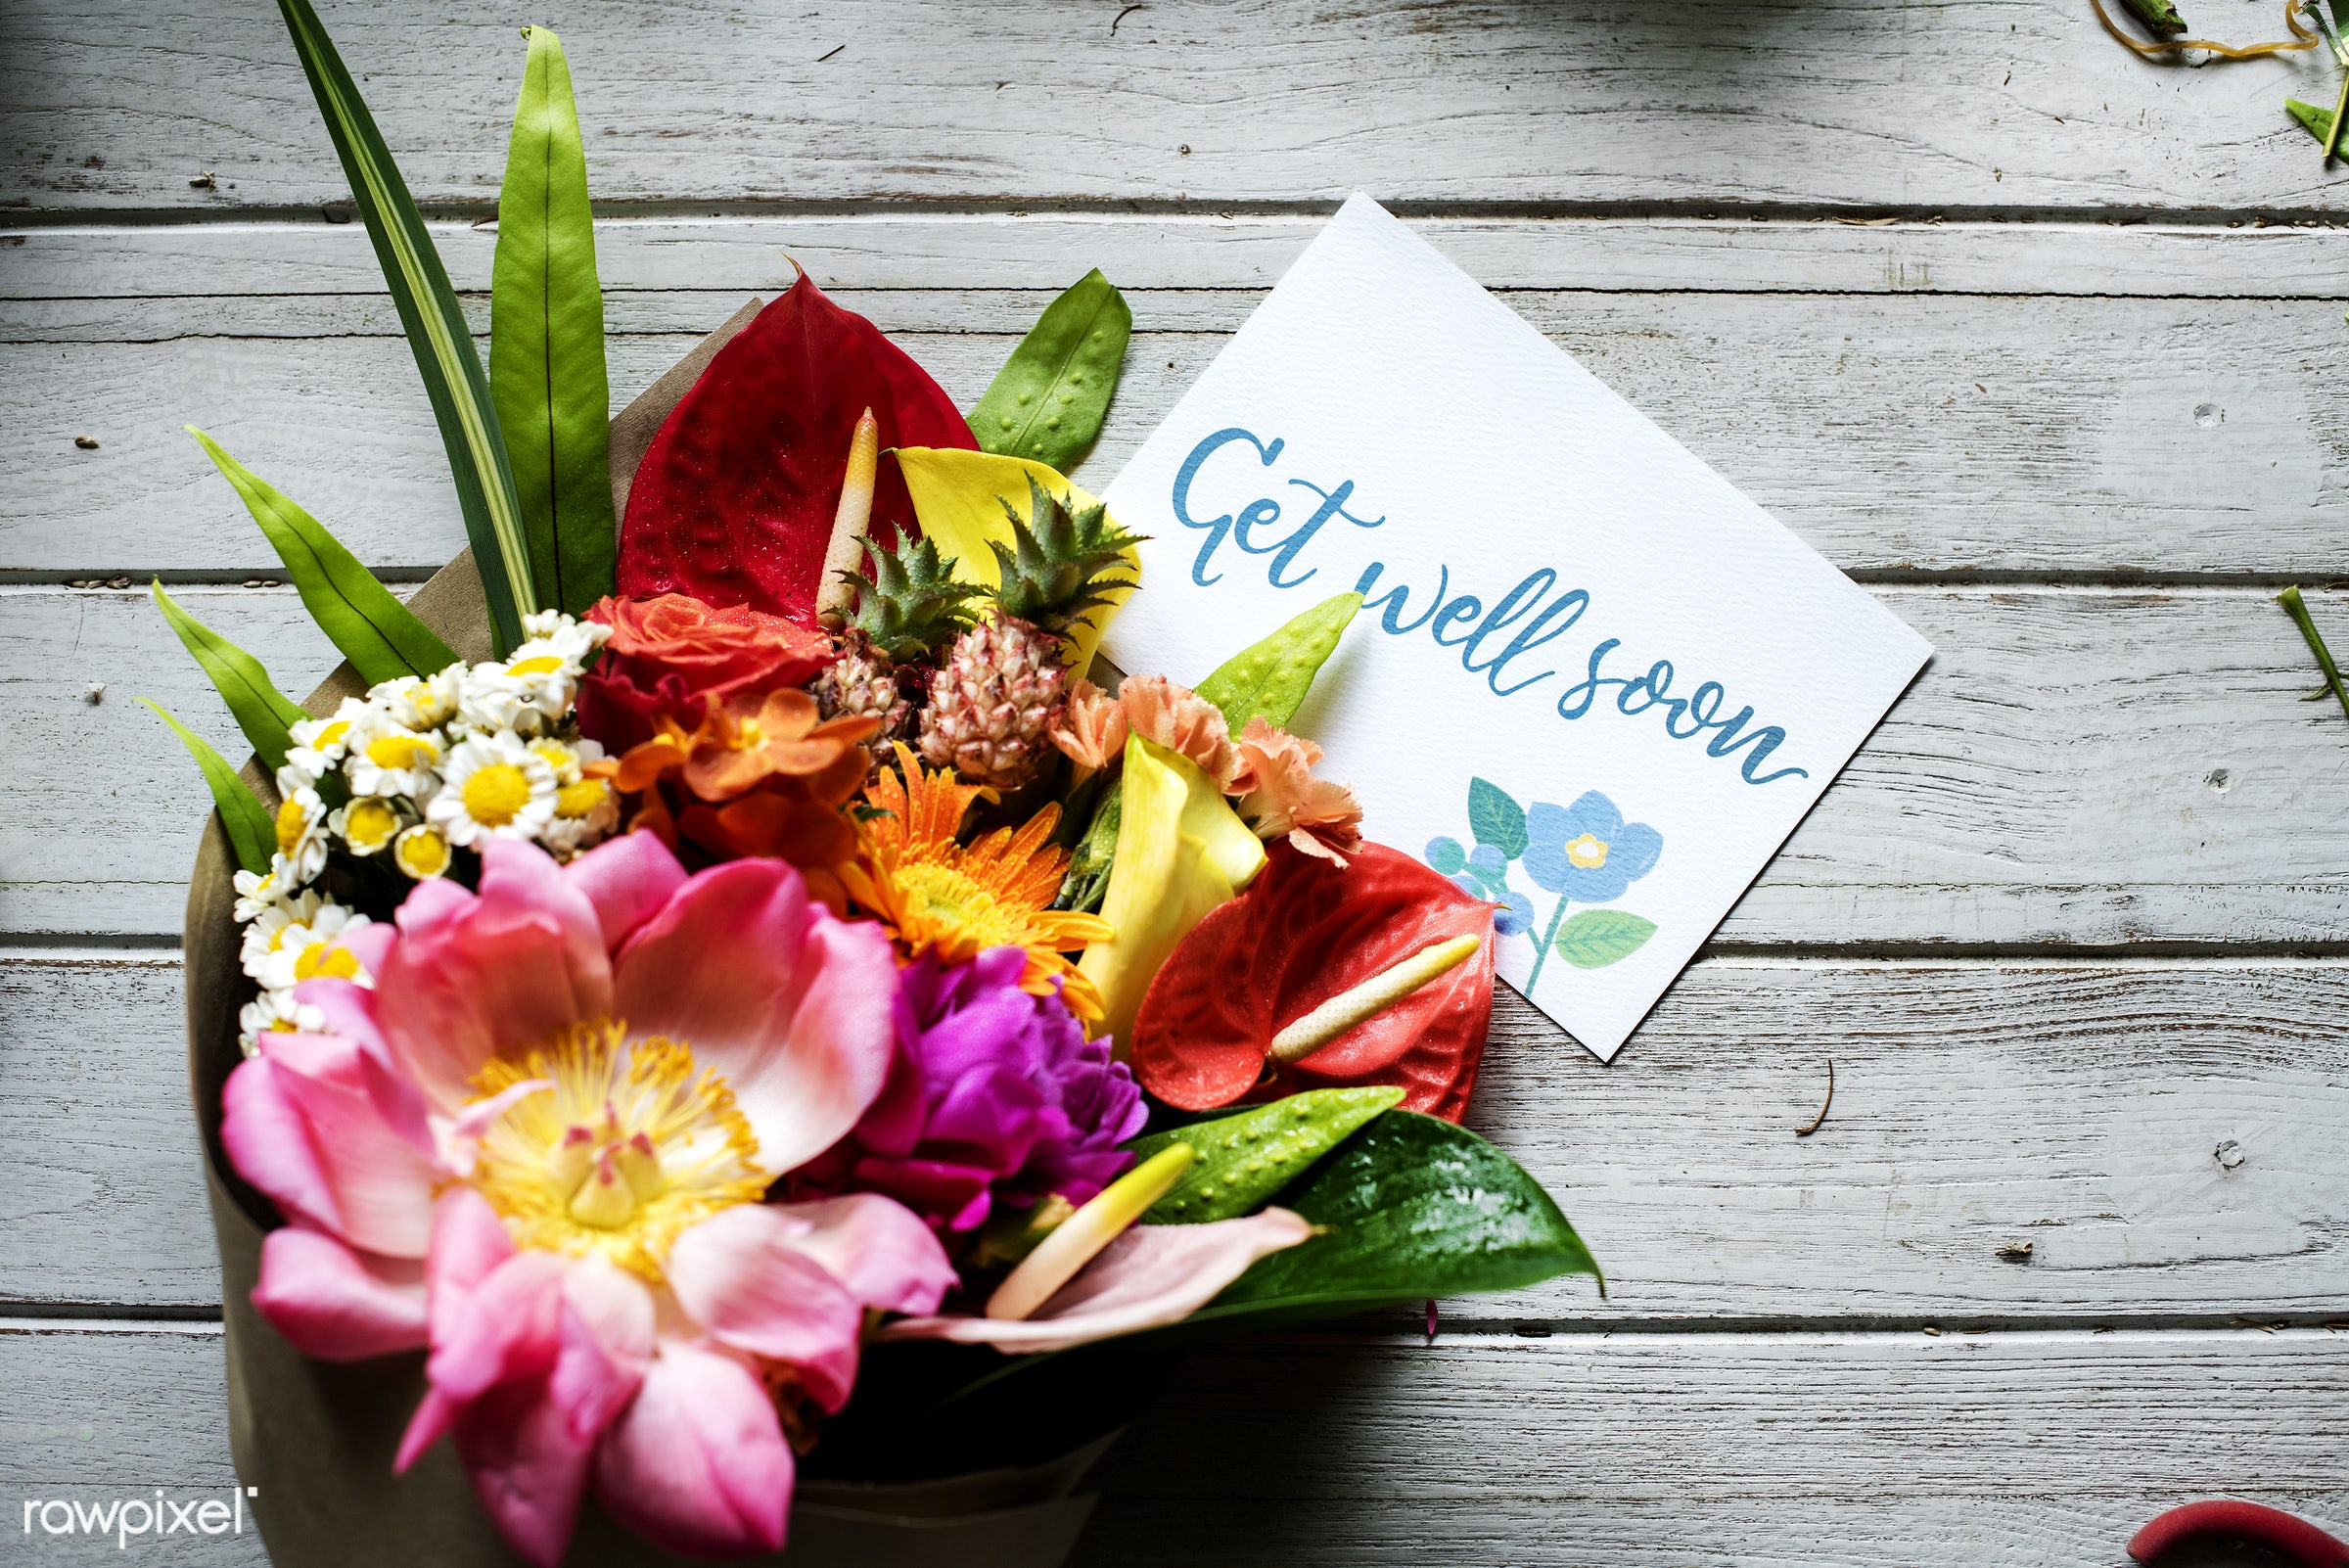 plant, bouquet, decoration, flora, refreshment, leisure, table, florist, wooden, recreational, fresh, card, get well soon,...